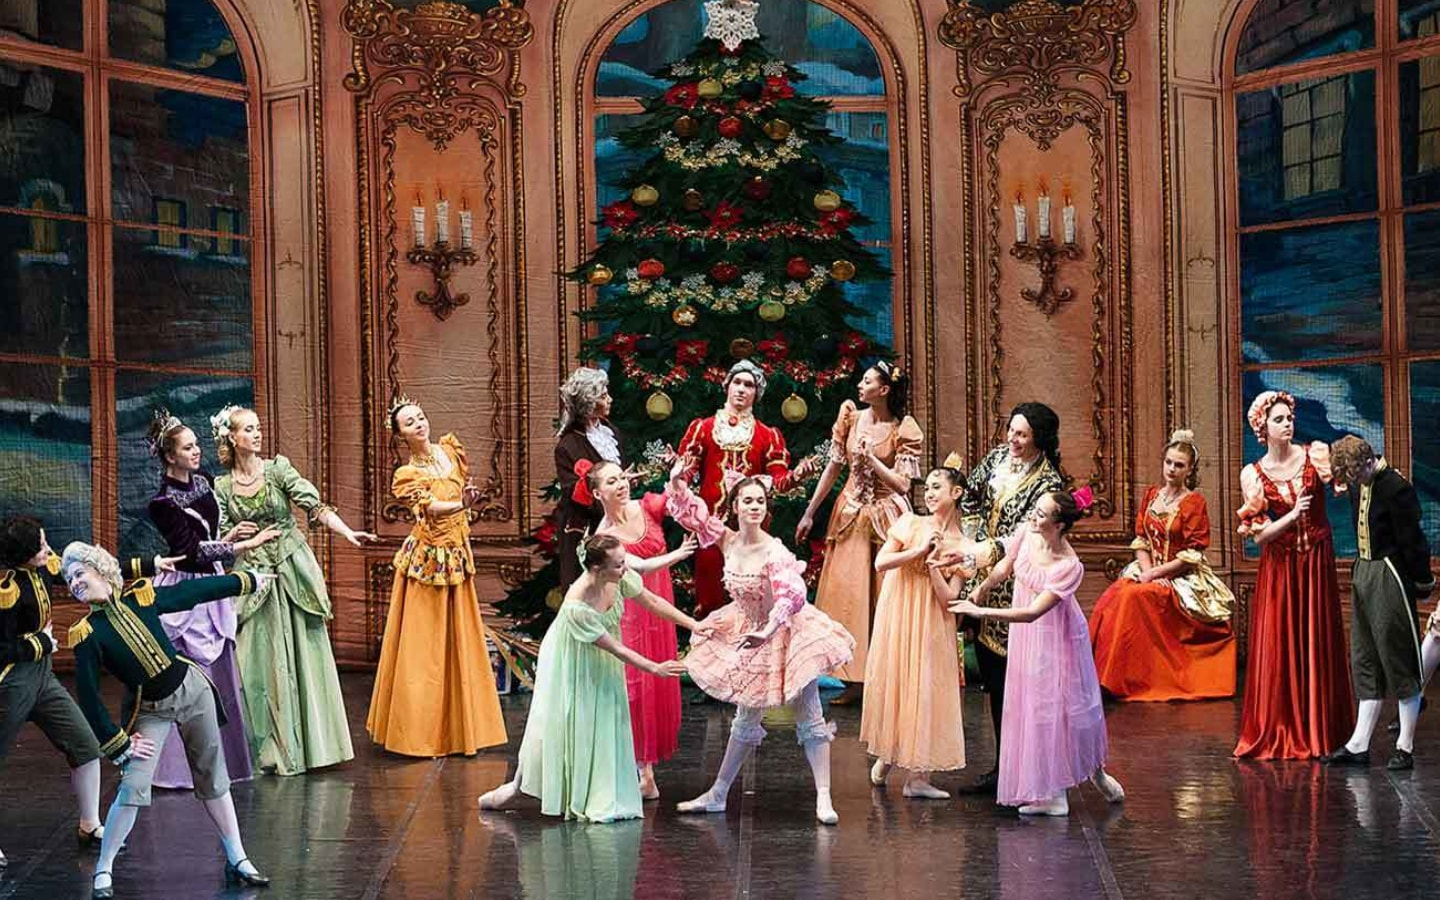 The Nutcracker cast, who will be performing at Dubai Opera shows